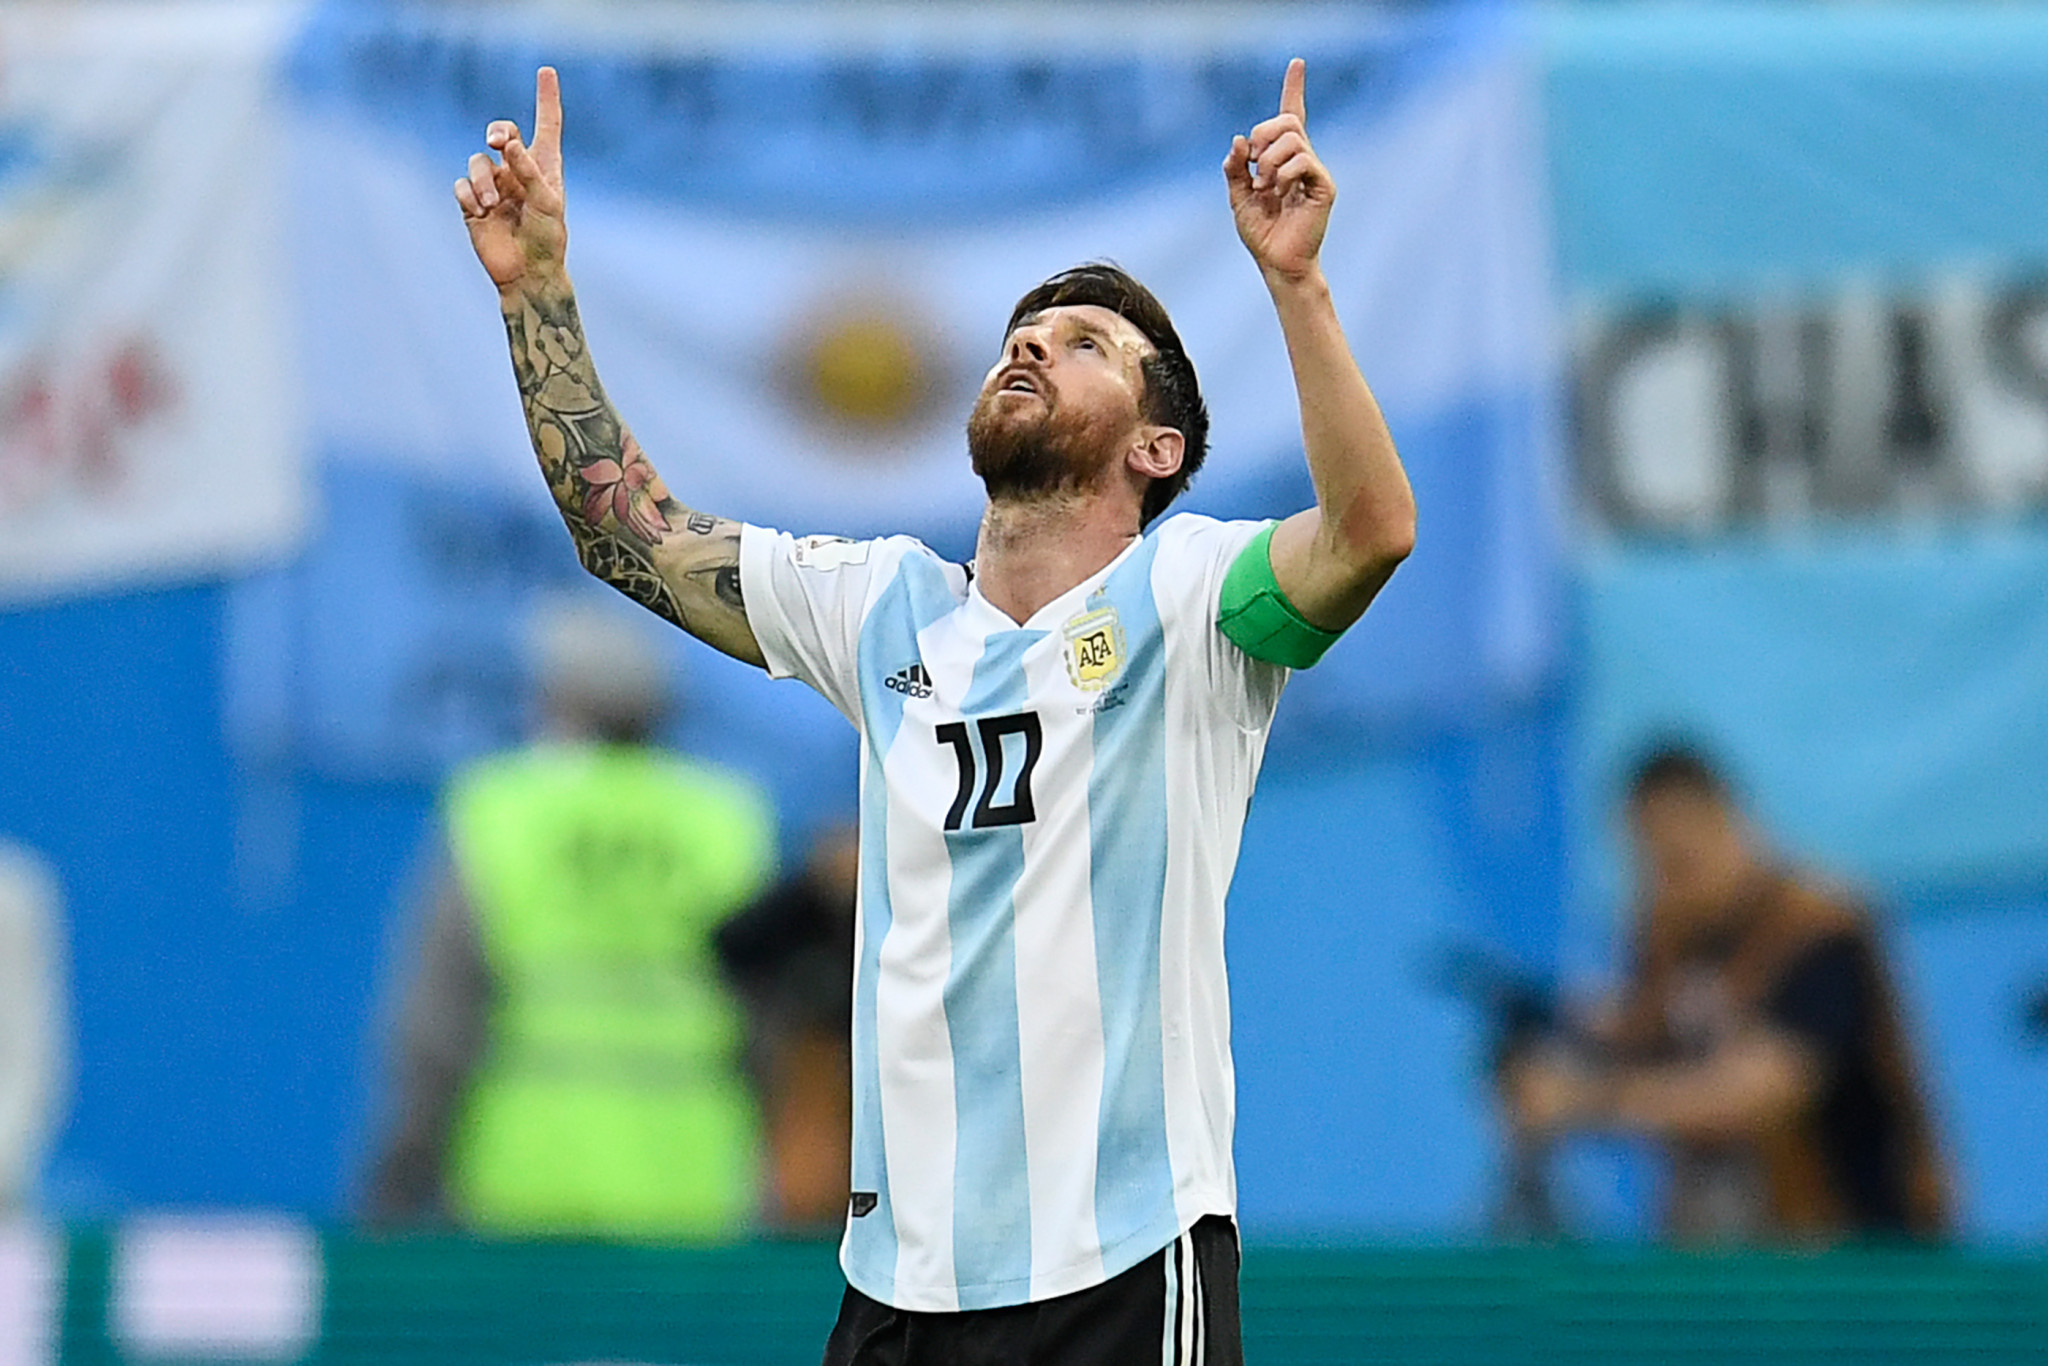 Argentina's Lionel Messi scored his first goal of the 2018 FIFA World Cup ©Getty Images